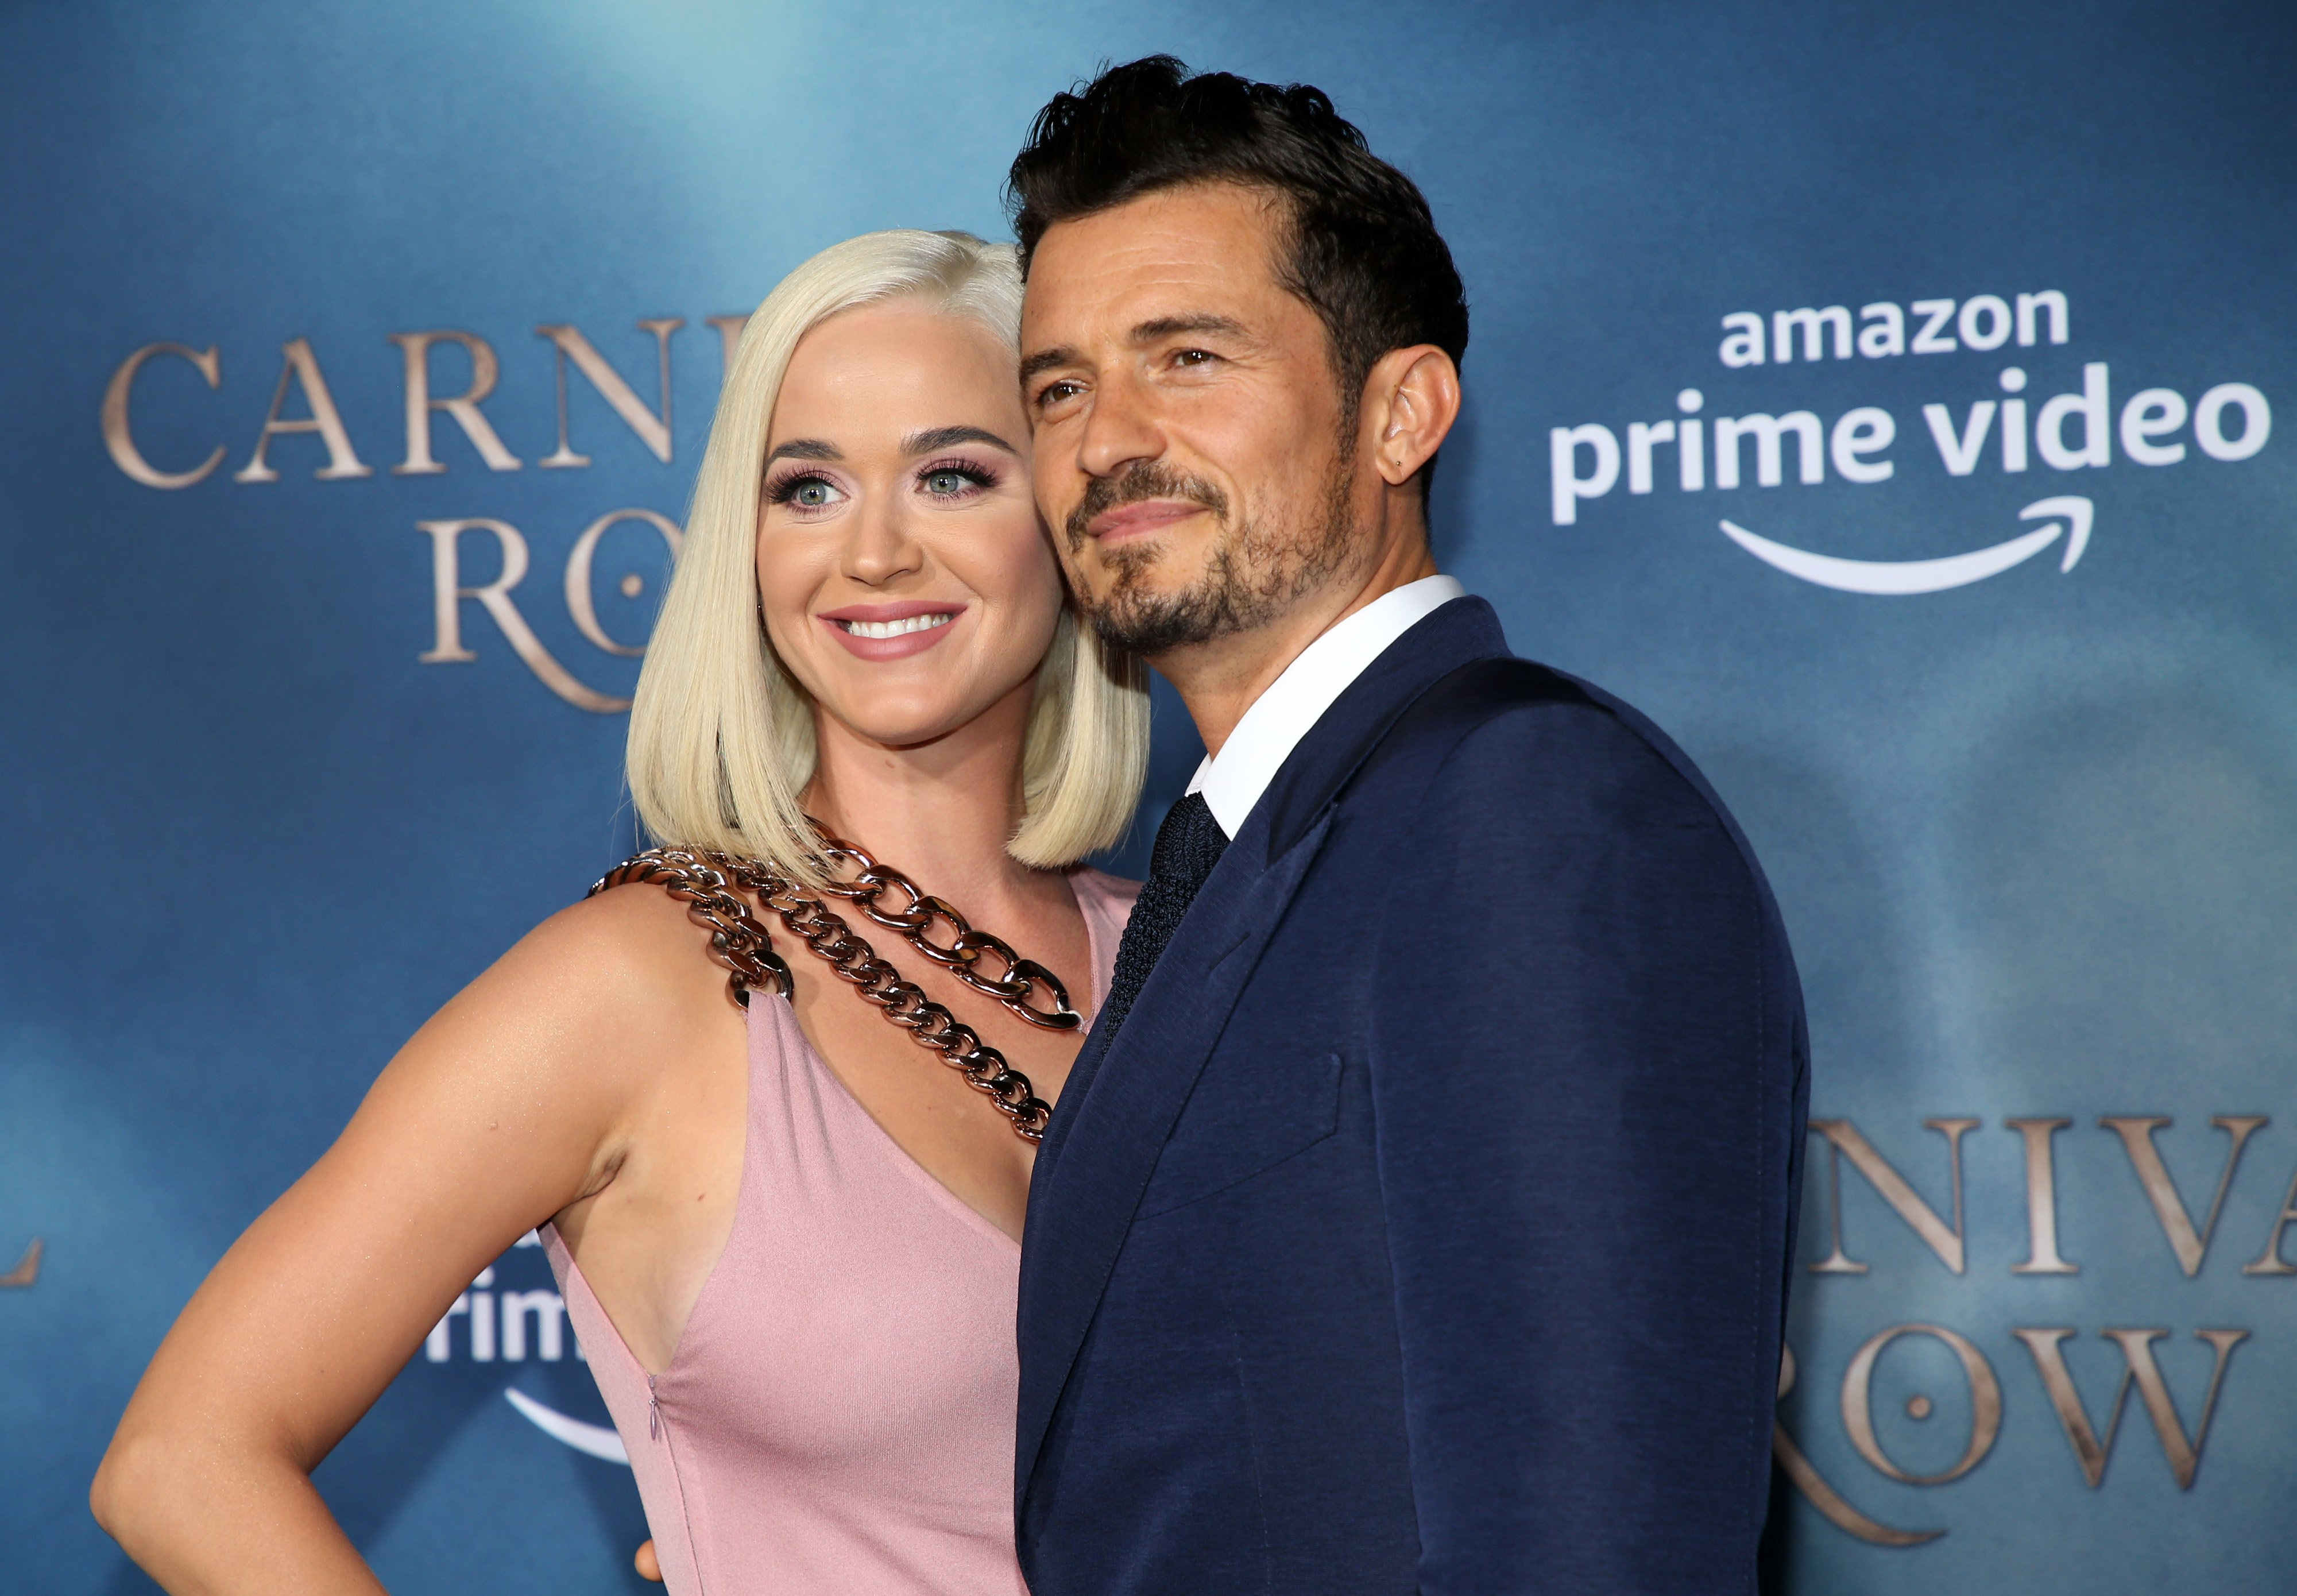 """Katy Perry and Orlando Bloom attend the LA premiere of """"Carnival Row"""" on August 21, 2019, in Hollywood, California. 